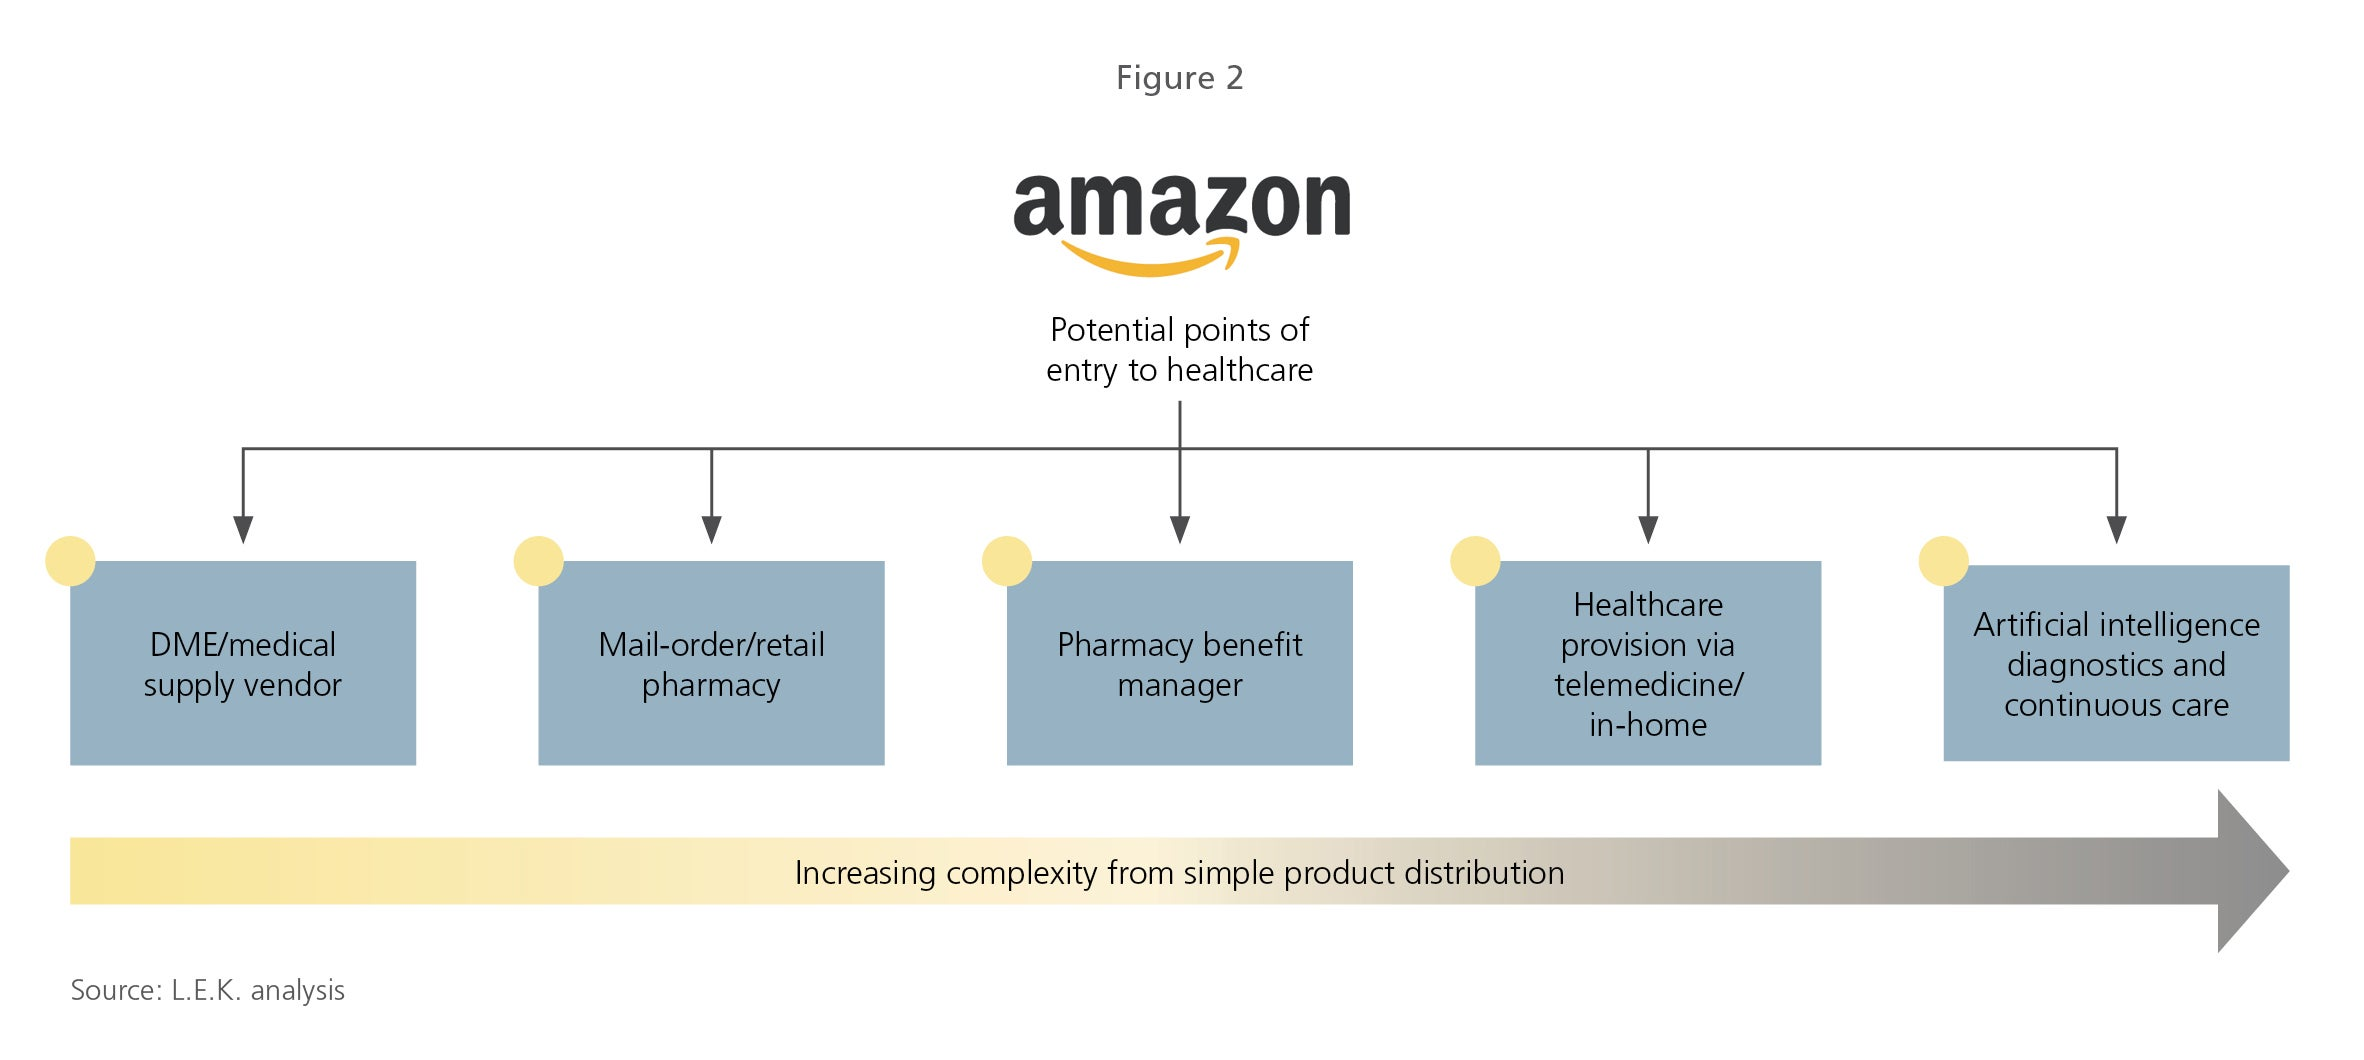 Potential points of entry to healthcare for Amazon